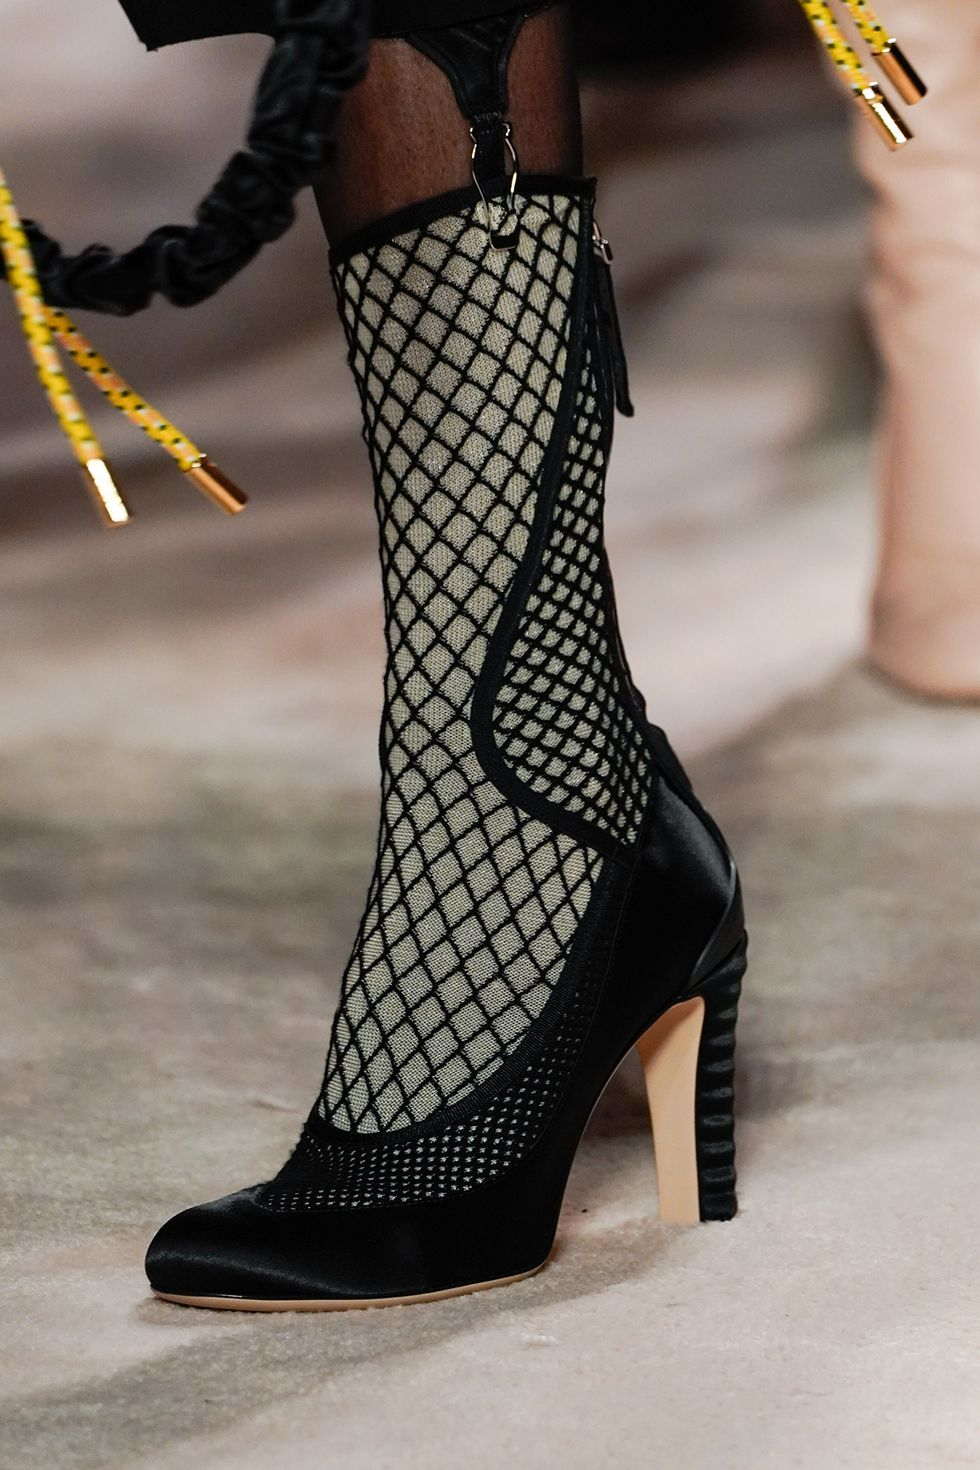 fendi-fall-2020-runway-fishnet-boot-1582236669.jpg (980×1470)